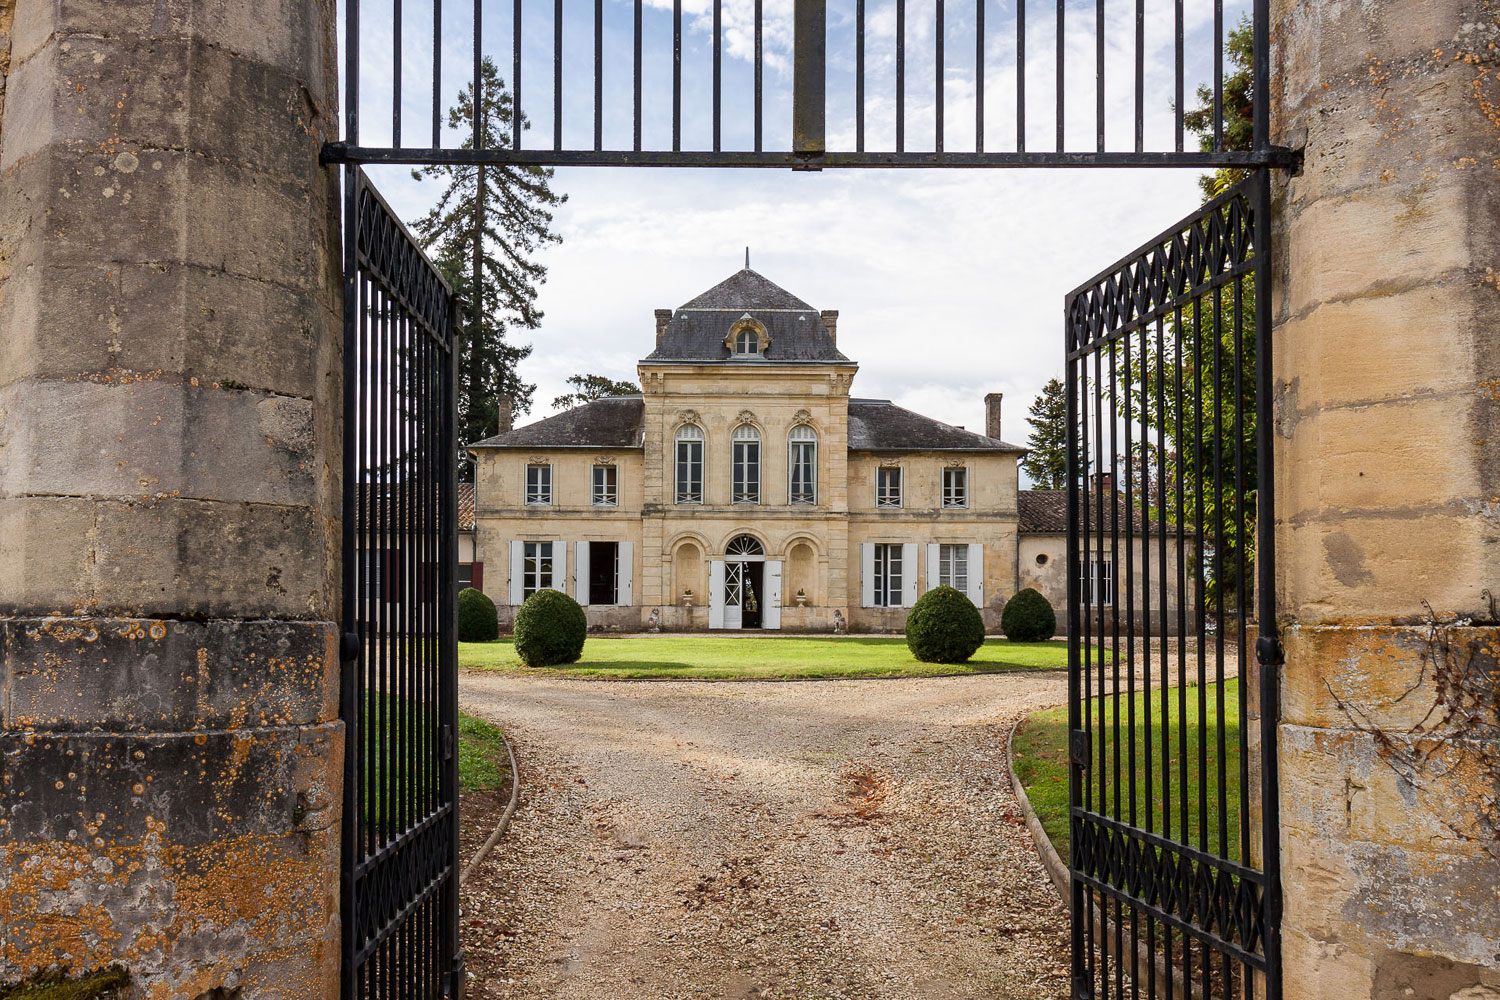 This 17th-century château and vineyard estate in Bordeaux was once owned by Napoleon's personal guard.